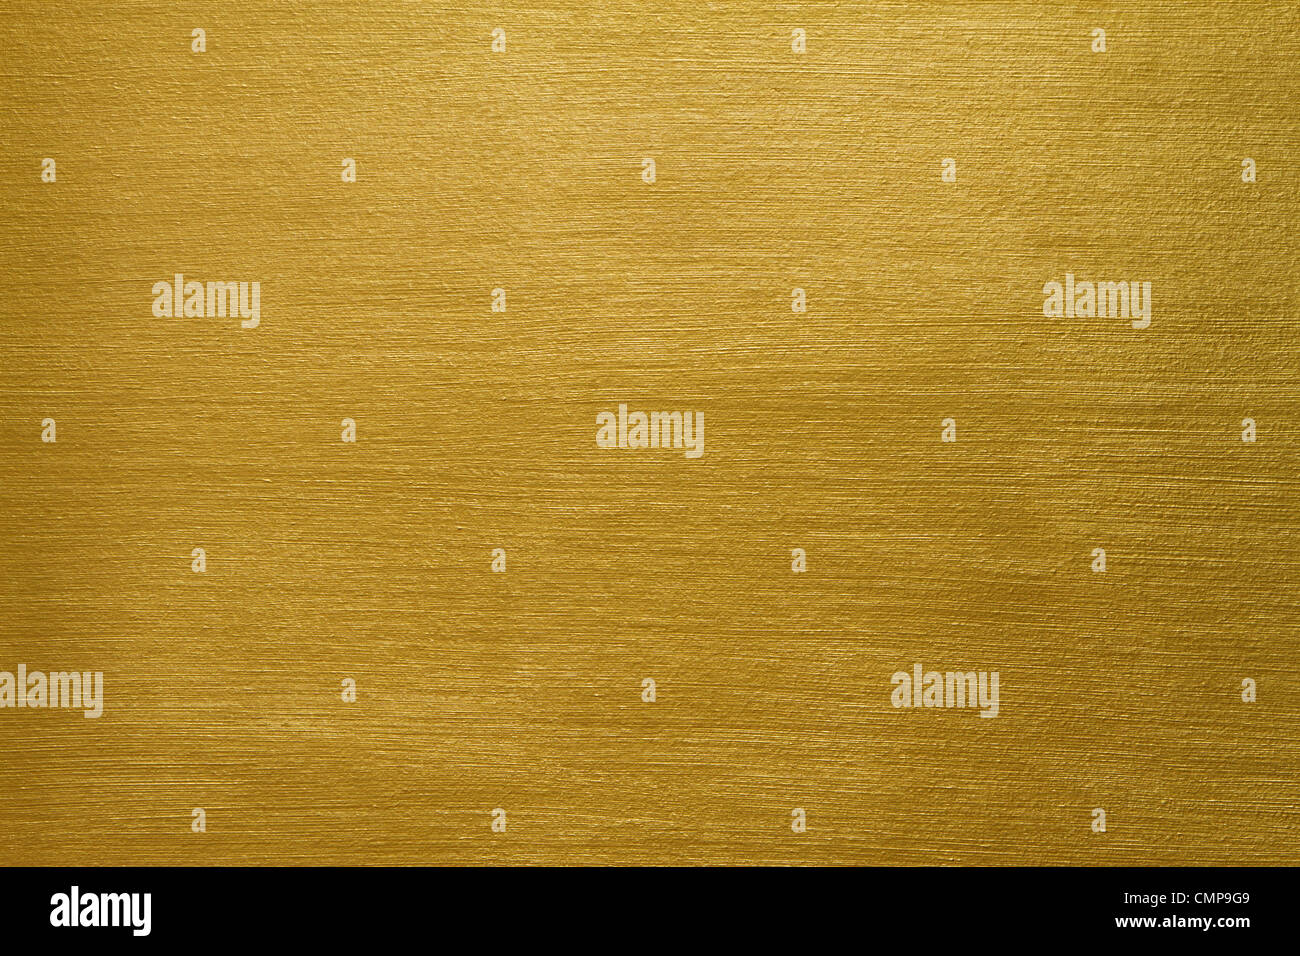 texture of a cement wall covered with gold paint with long strokes Stock Photo